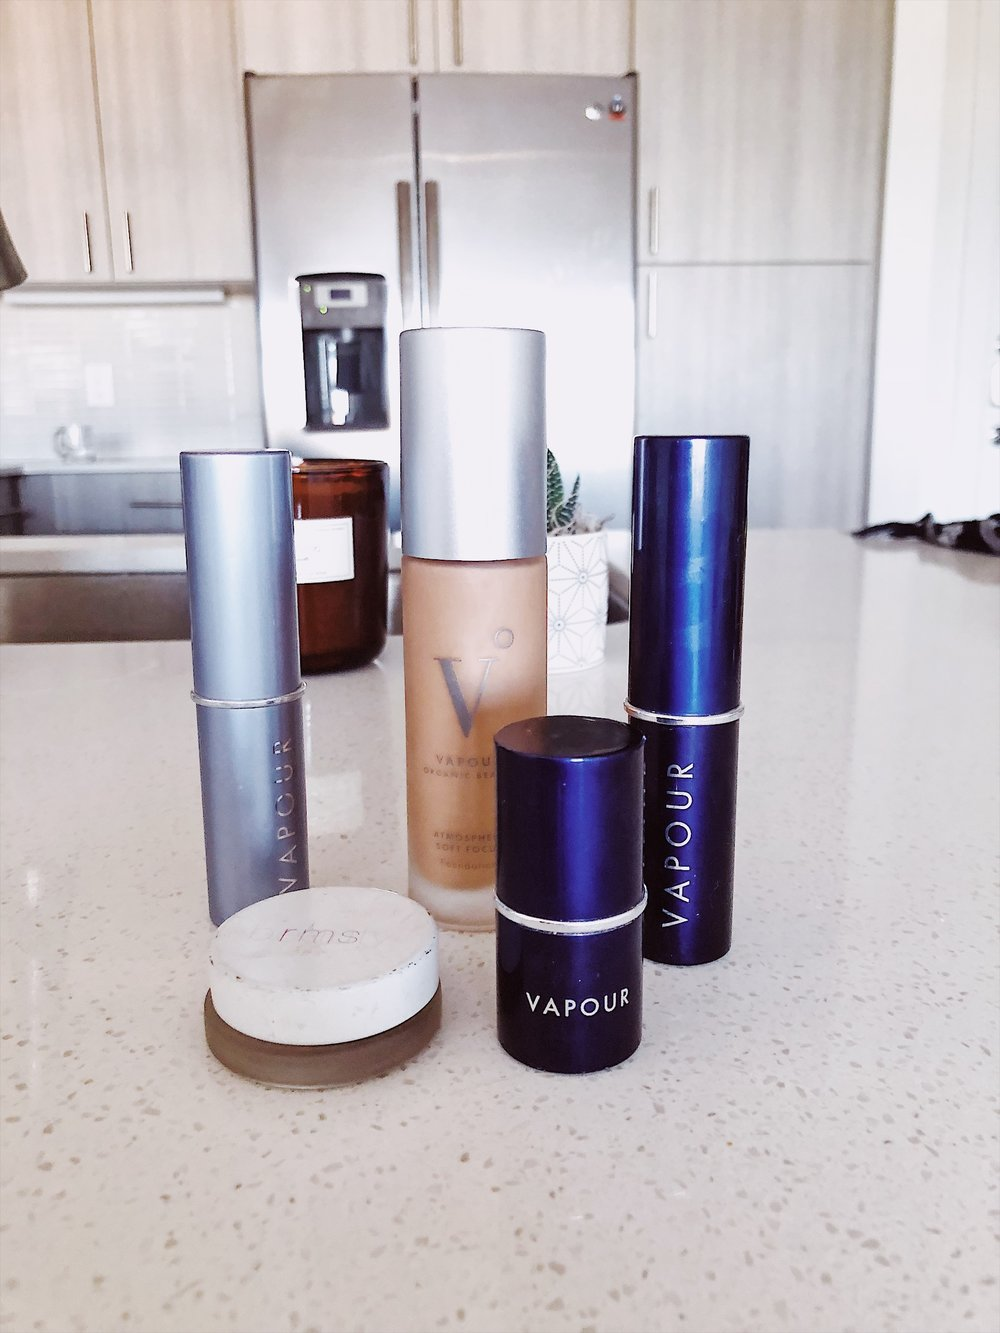 11C631AE-F198-444F-ADAA-76970B0E1F41.JPGComplete Guide to Clean Beauty | In this post, I'm sharing my best natural beauty tips, including how to identify beauty products that are legit natural and clean (don't trust expensive marketing!), harmful ingredients to avoid, and some of my favorite natural makeup and skincare products. If you're on a mission to reduce toxins in your life and create a more eco-friendly beauty routine, this post is a must-read! | Om & The City Blog #omandthecity #naturalbeauty #naturalskincare #ecofriendly